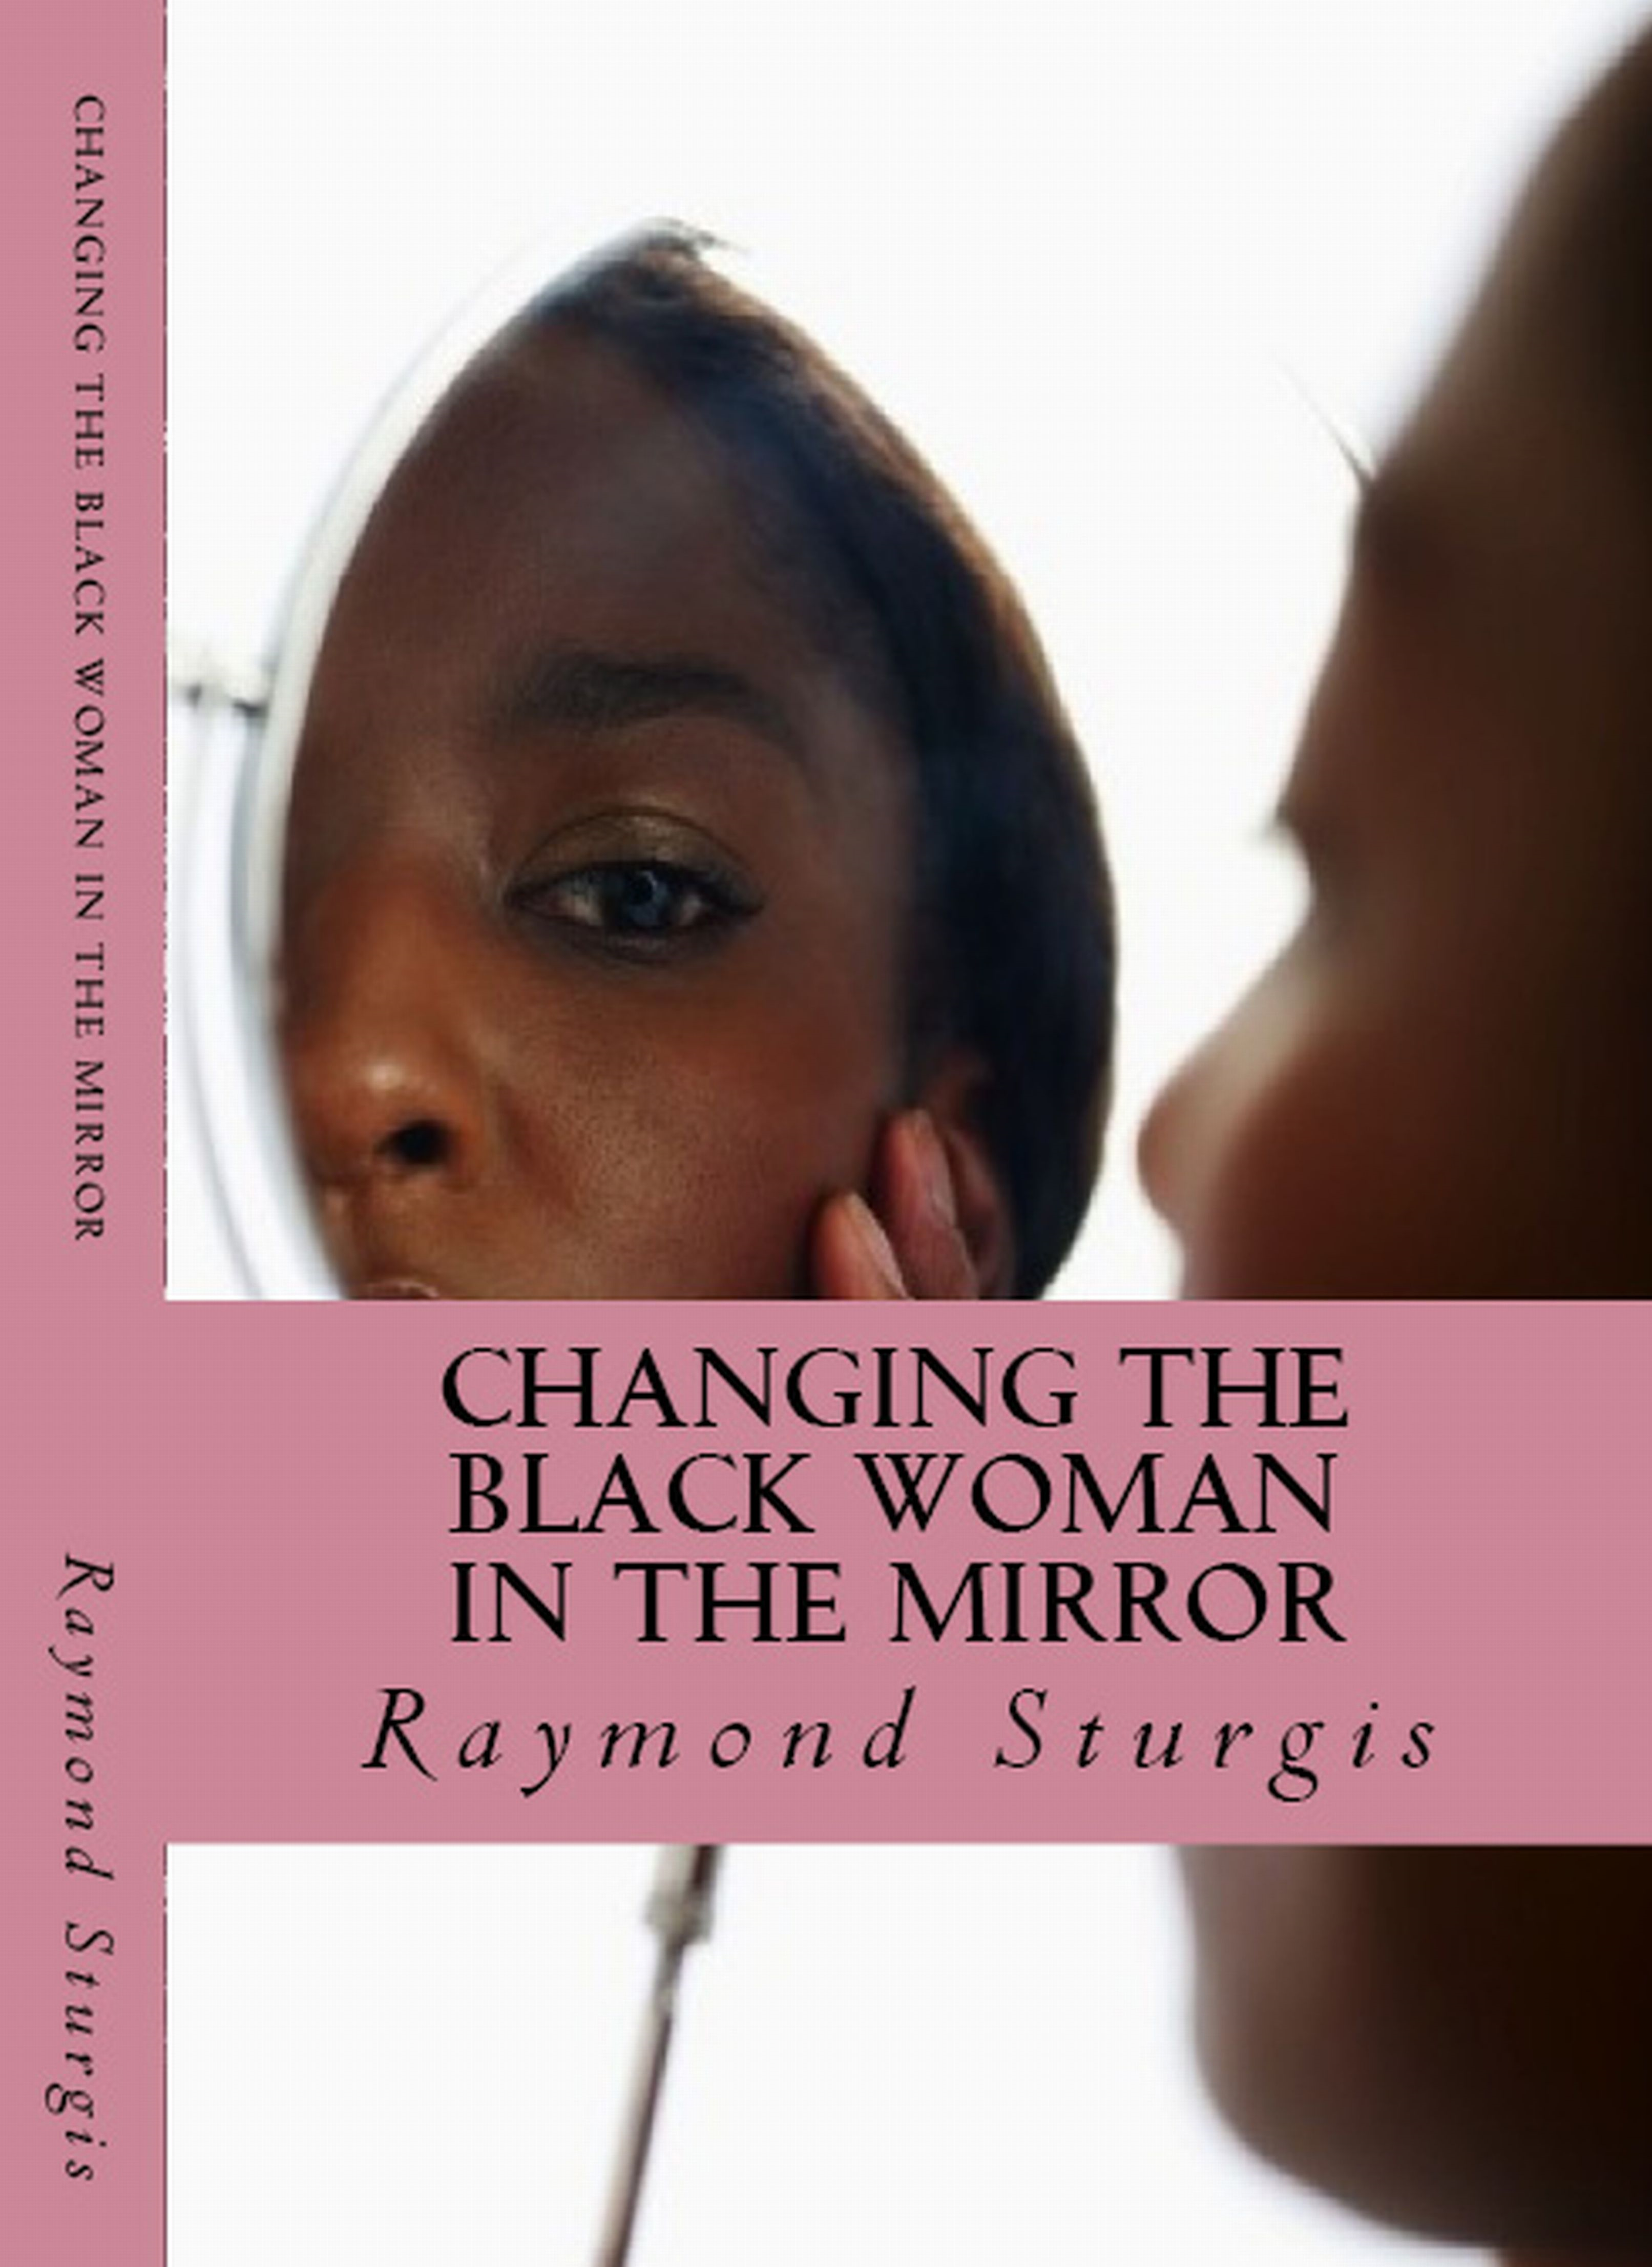 Changing the Black Woman In the Mirror By: Raymond Sturgis